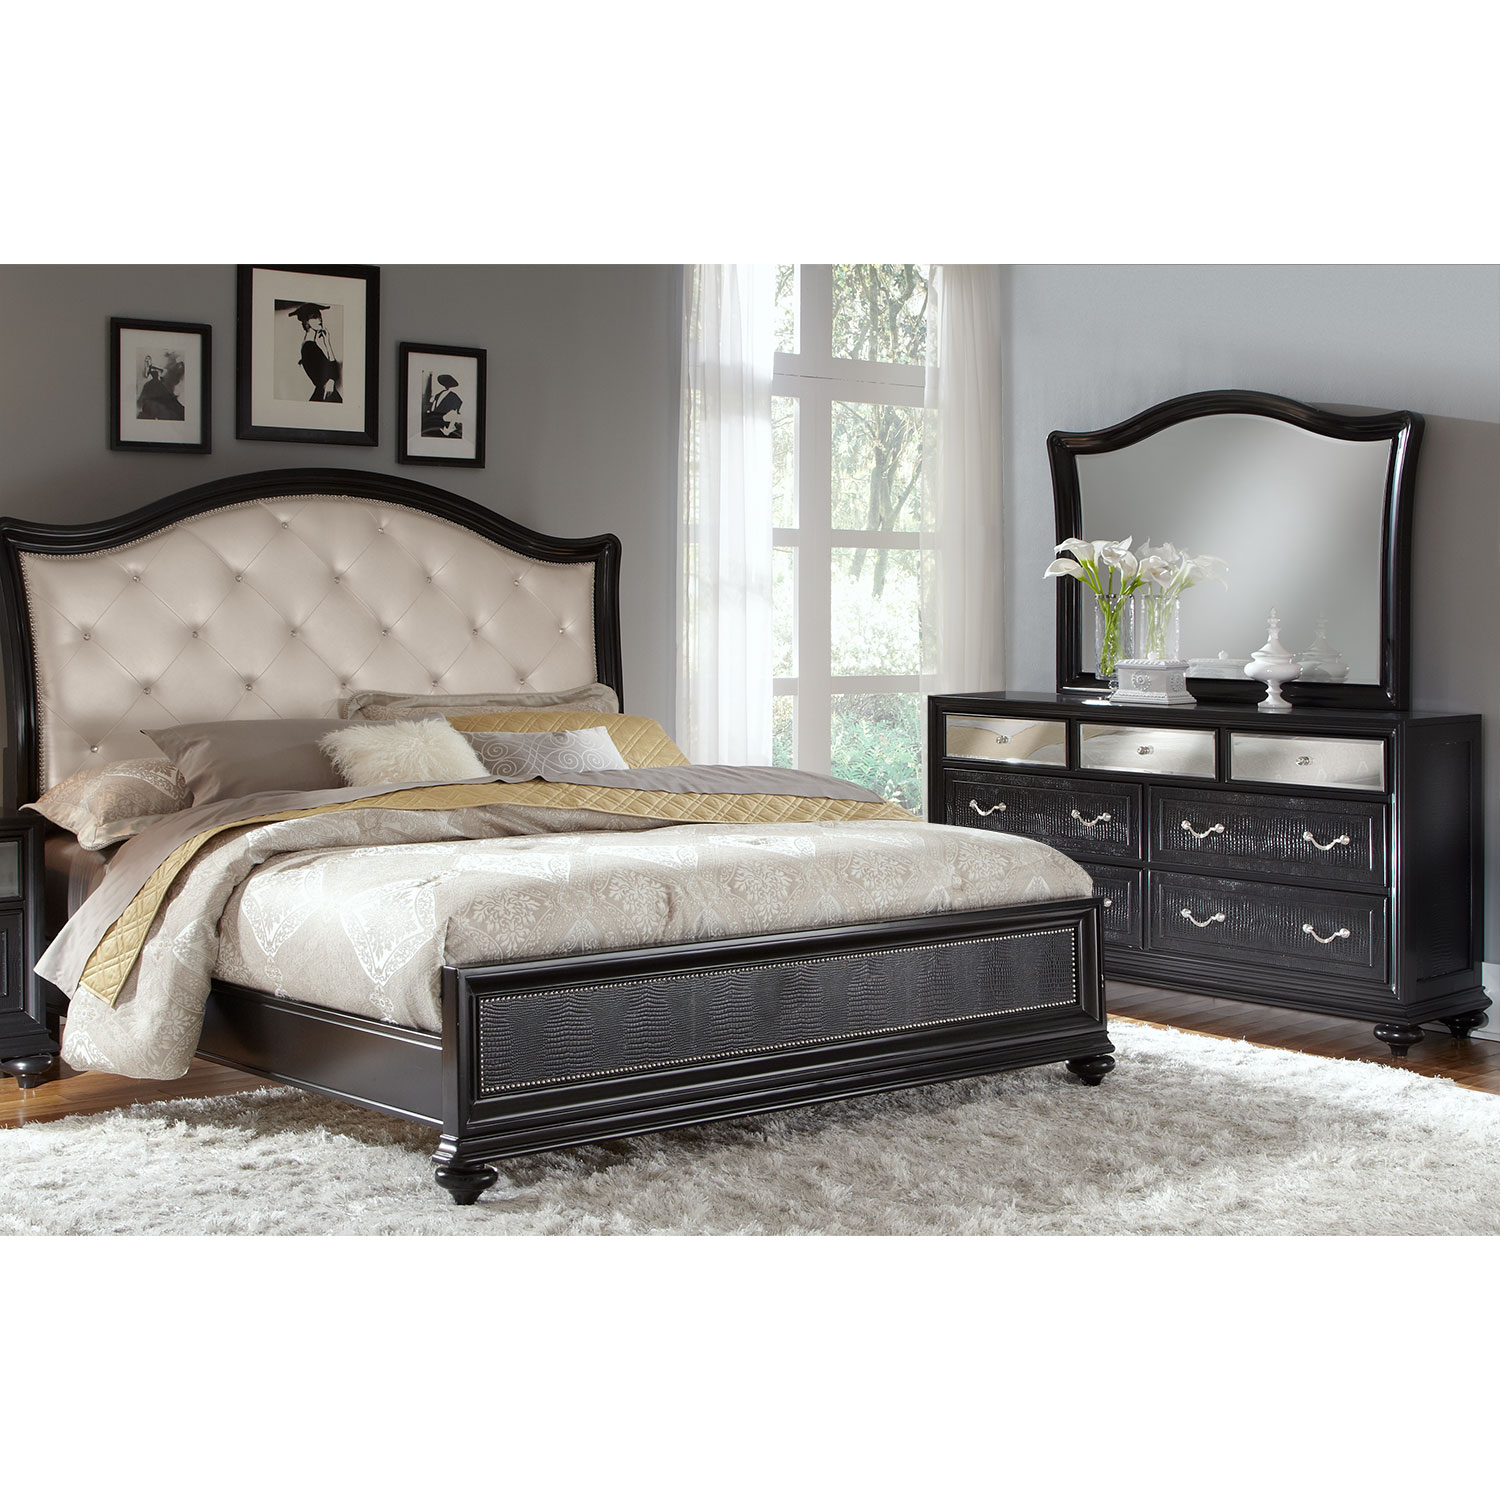 bedroom sets king. Hover to zoom Marilyn 5 Piece Queen Bedroom Set  Ebony Value City Furniture